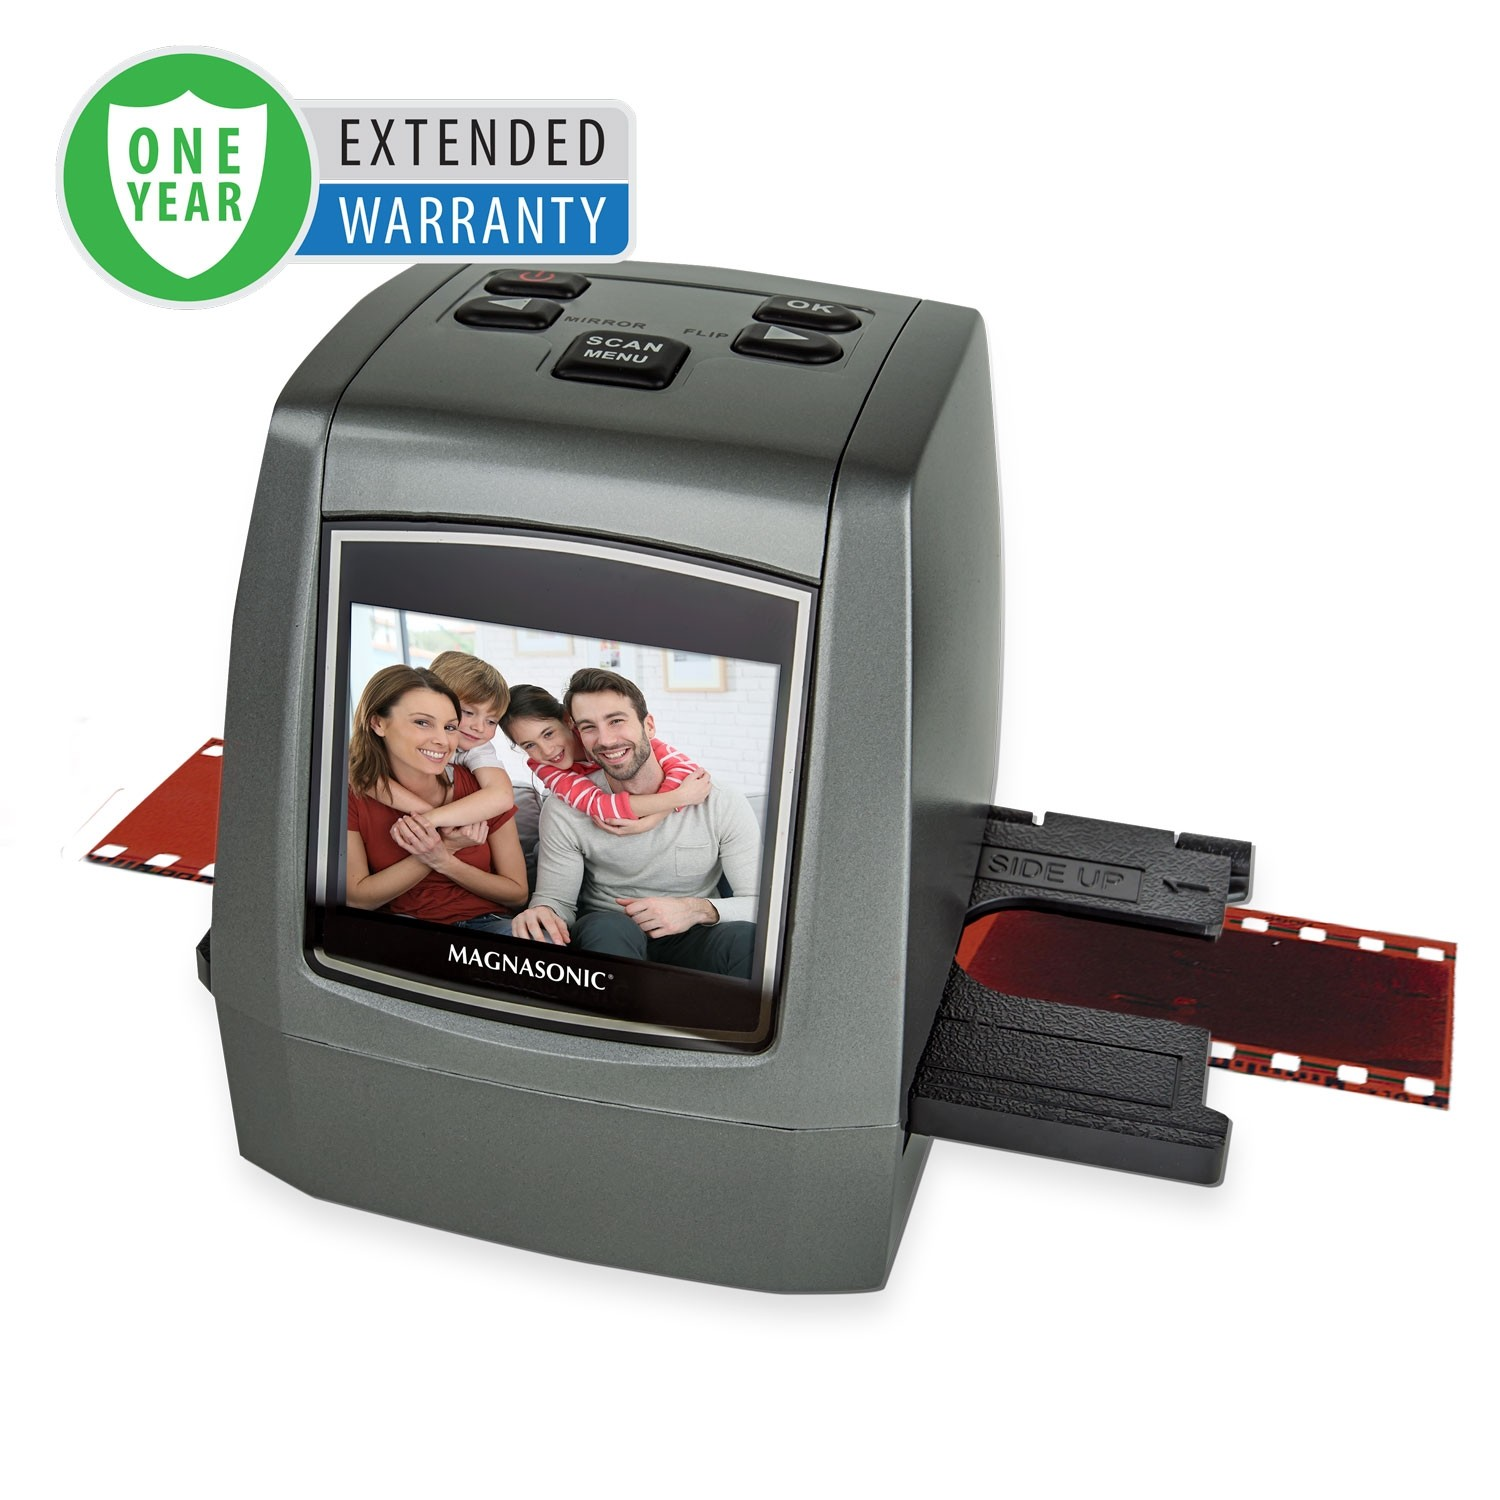 1 Year Warranty for the All-In-One 22MP Film Scanner